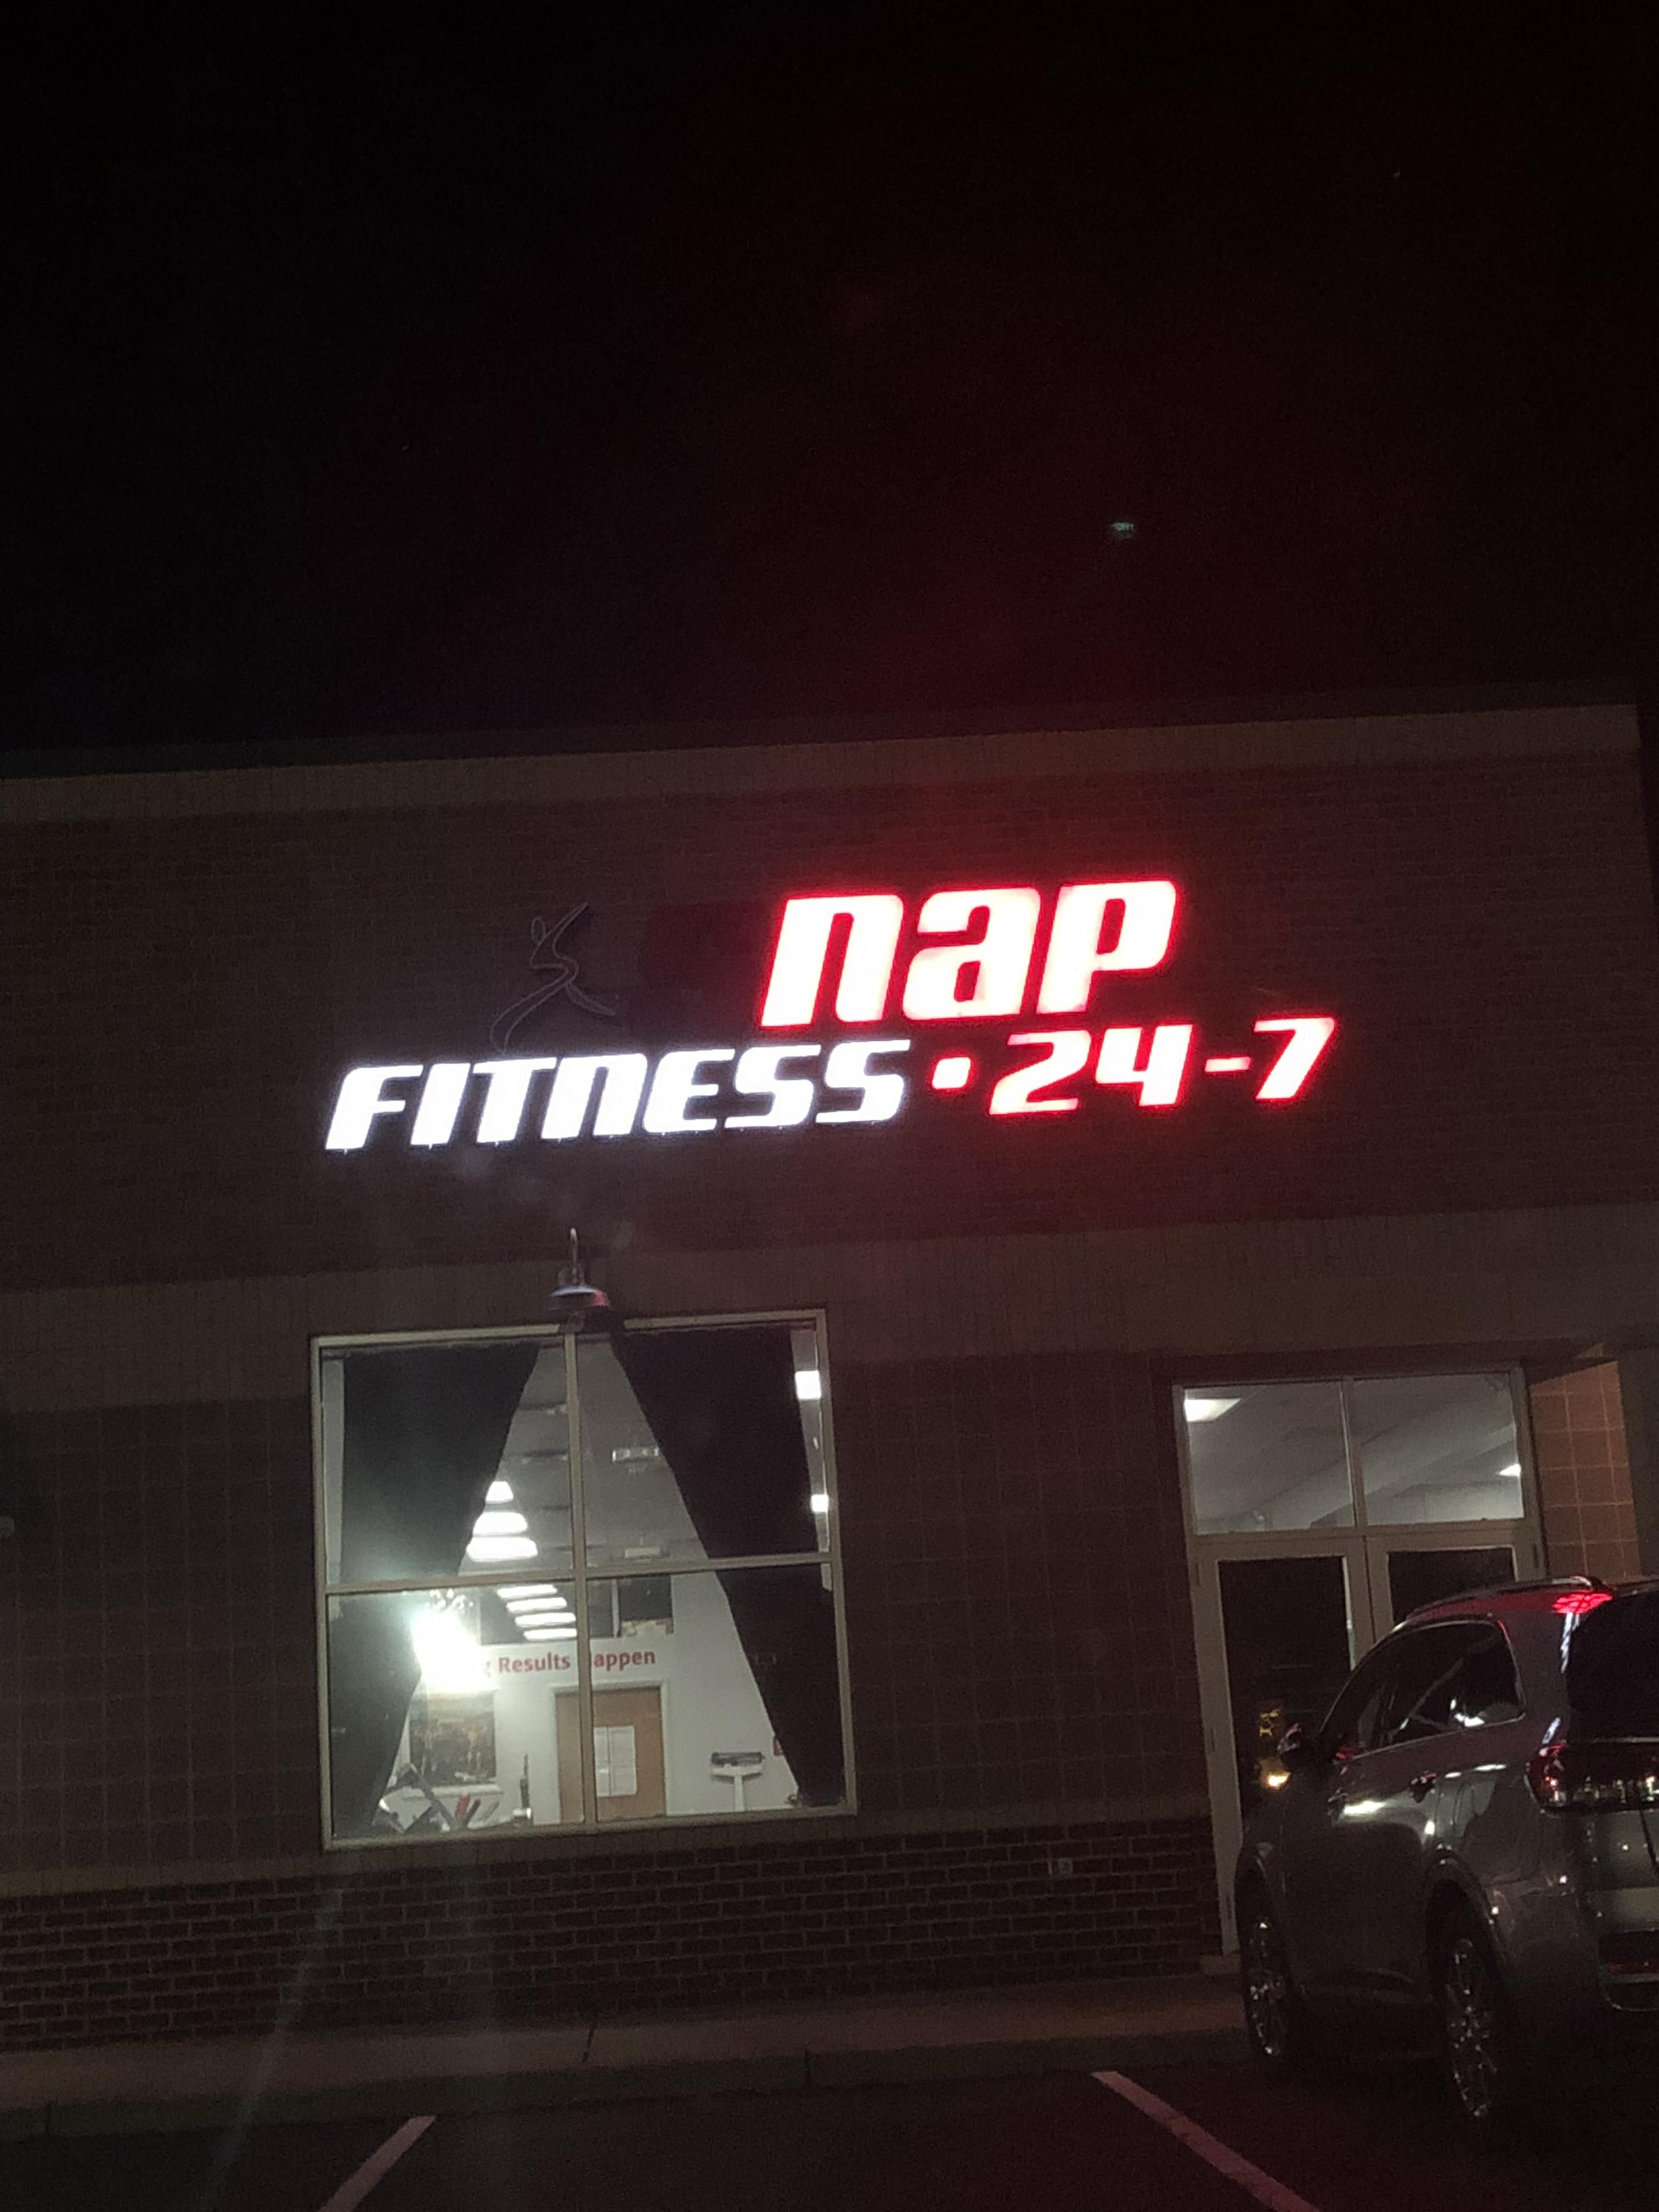 Finally a gym that meets my needs.